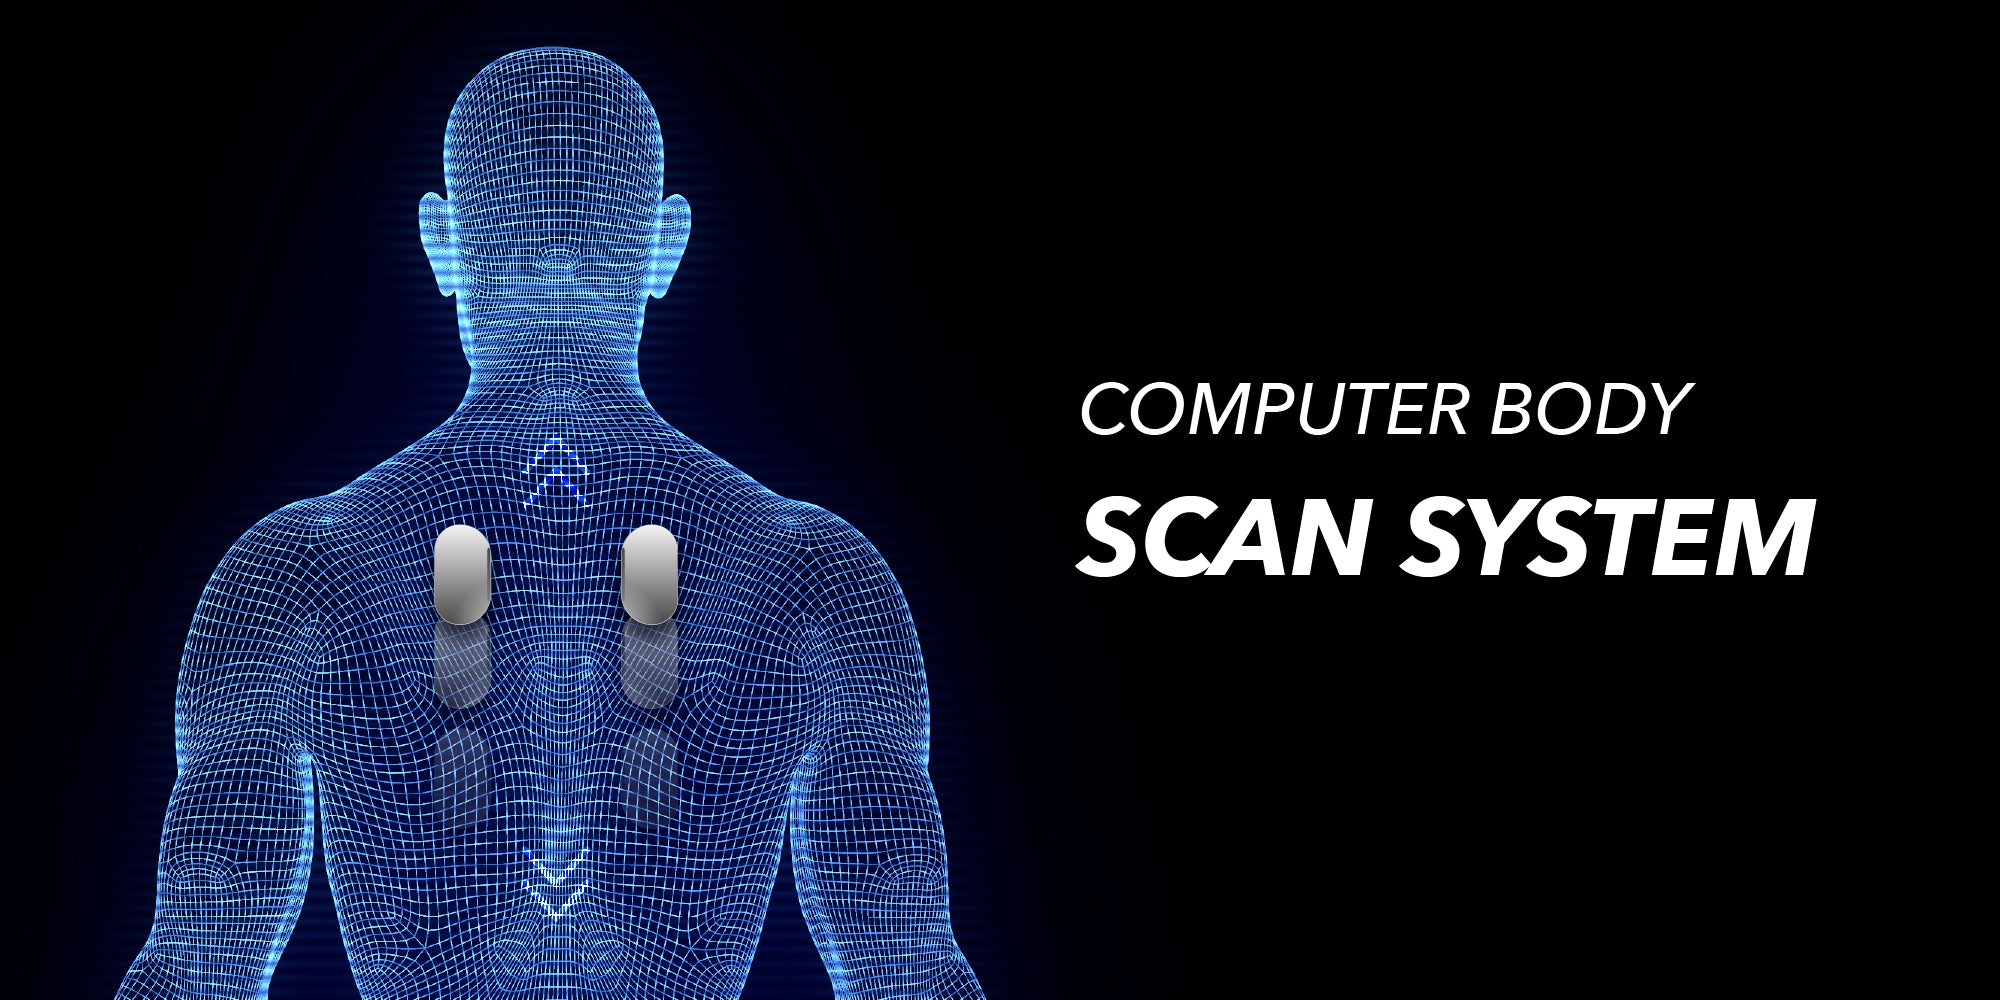 Computer Body Scan System